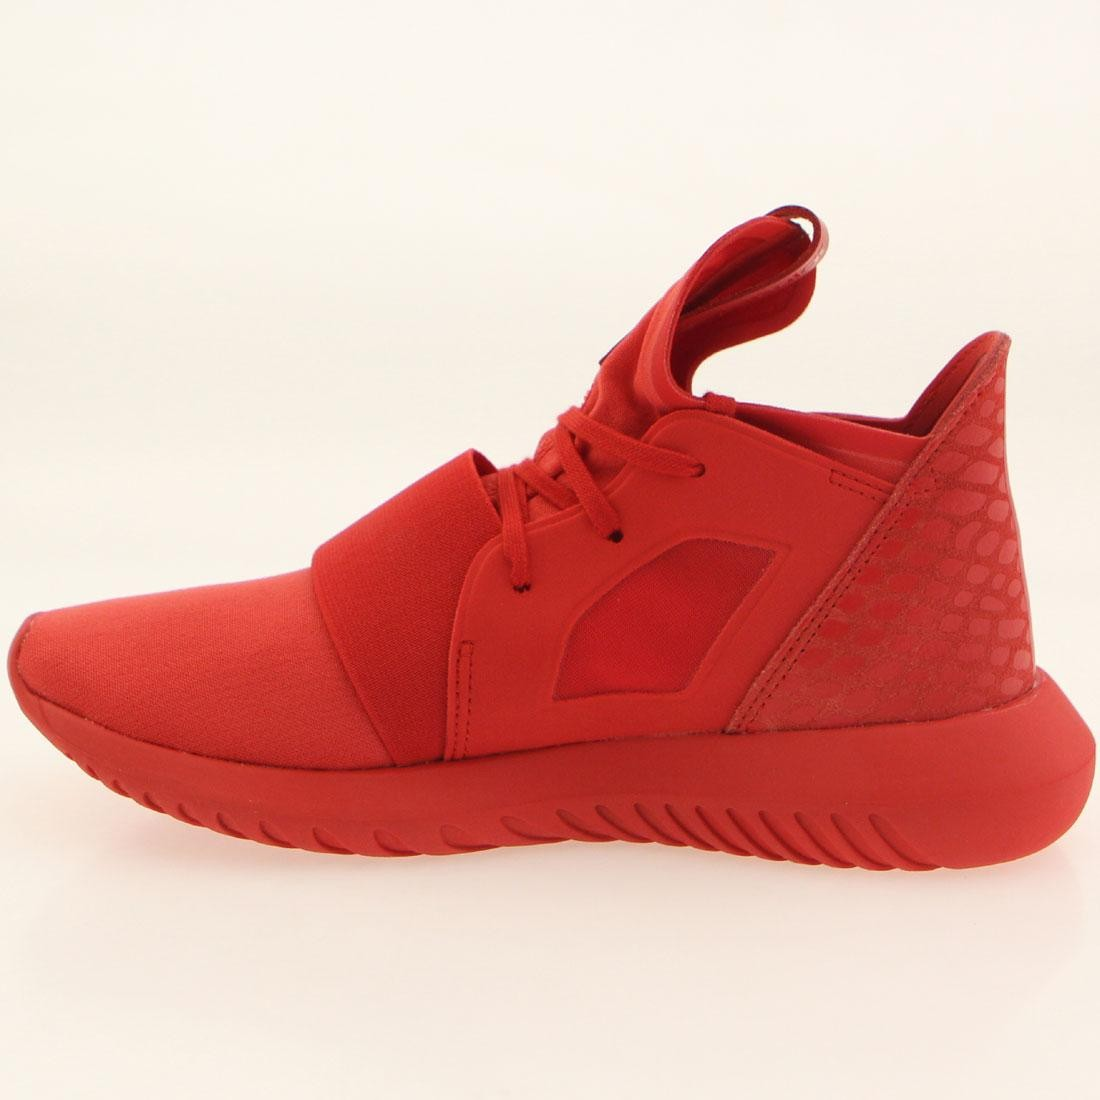 3f1a4624a450 Adidas Women Tubular Defiant (red   lush red   running white)